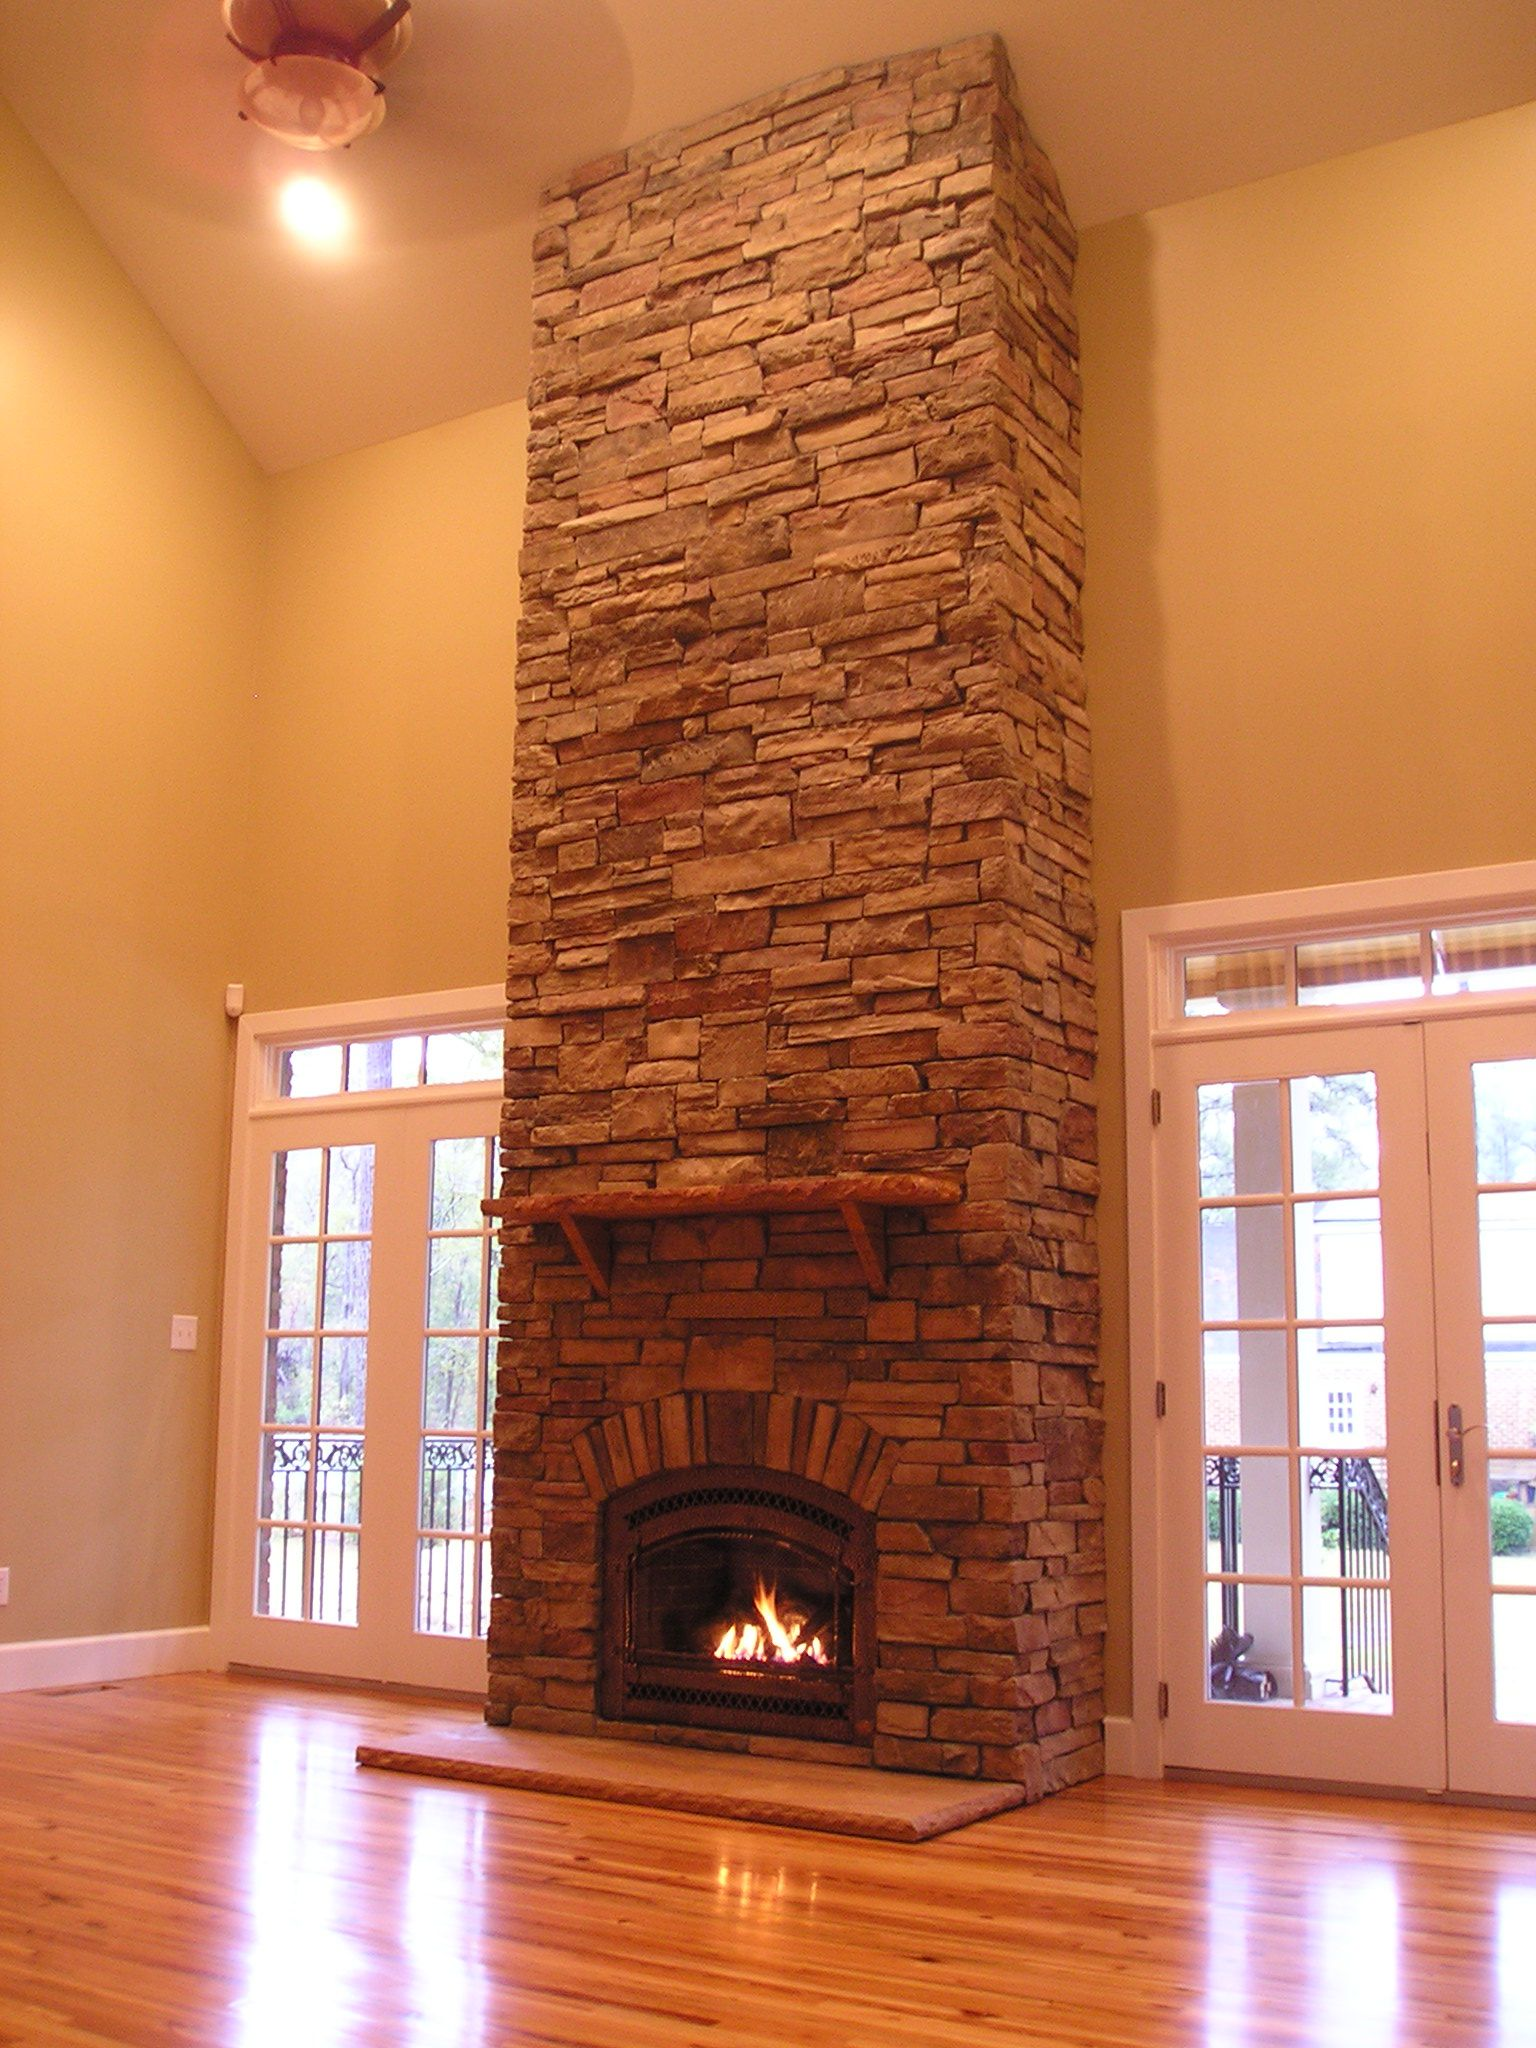 25 best fireplaces images on pinterest gas fireplaces fireplace